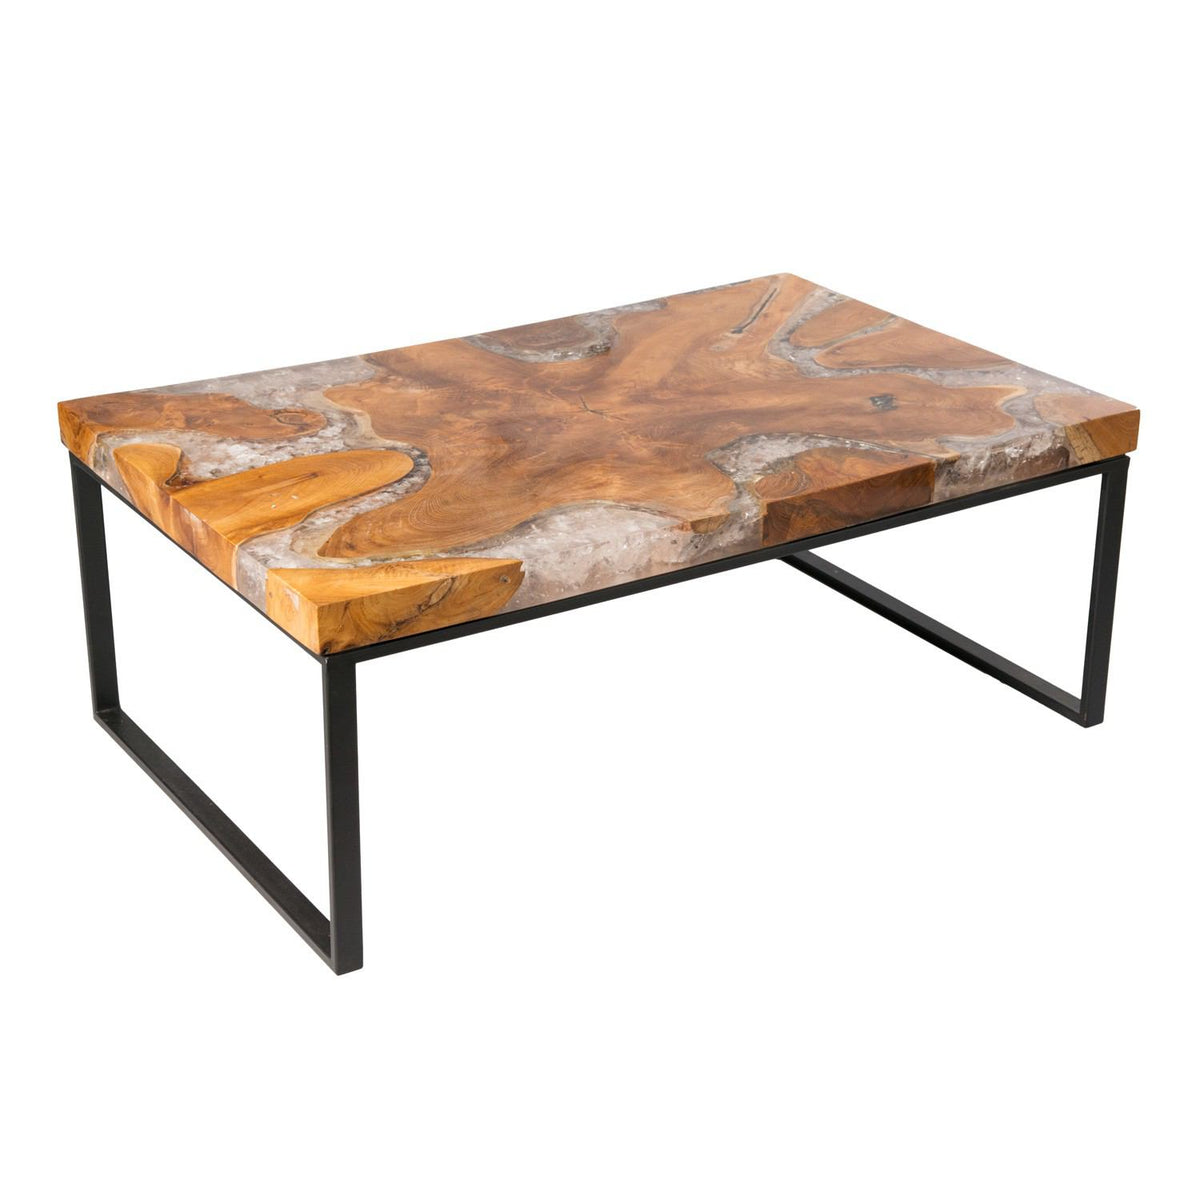 Vidaxl Coffee Table Teak Resin: Teak Root And Resin Wood Coffee Table CR-2050